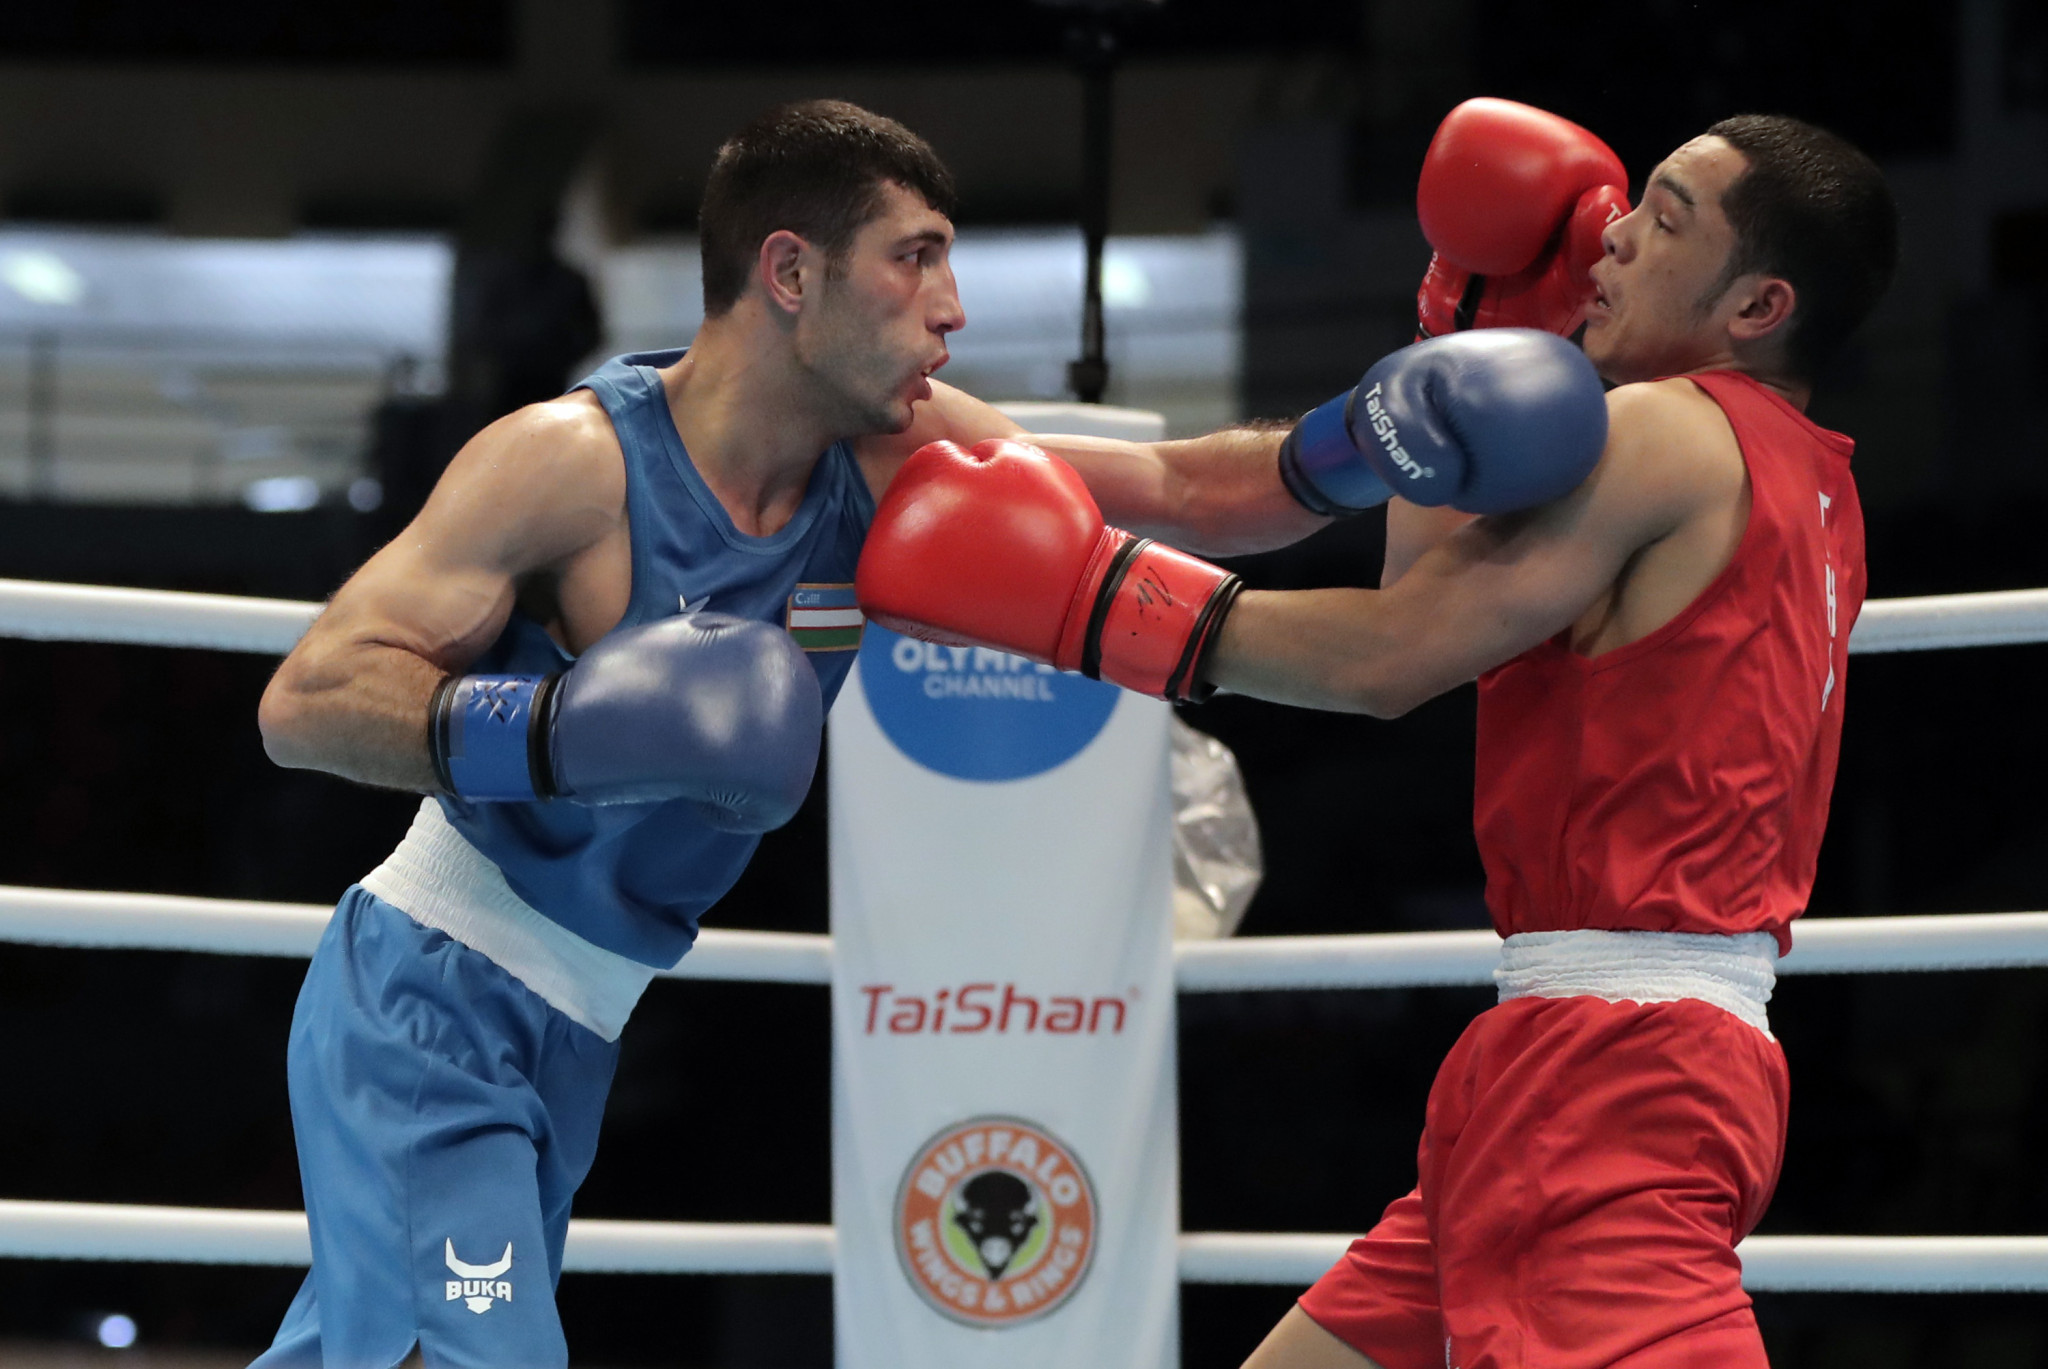 Rio 2016 champion Zoirov exits in last four at Asia-Oceania Olympic boxing qualifier